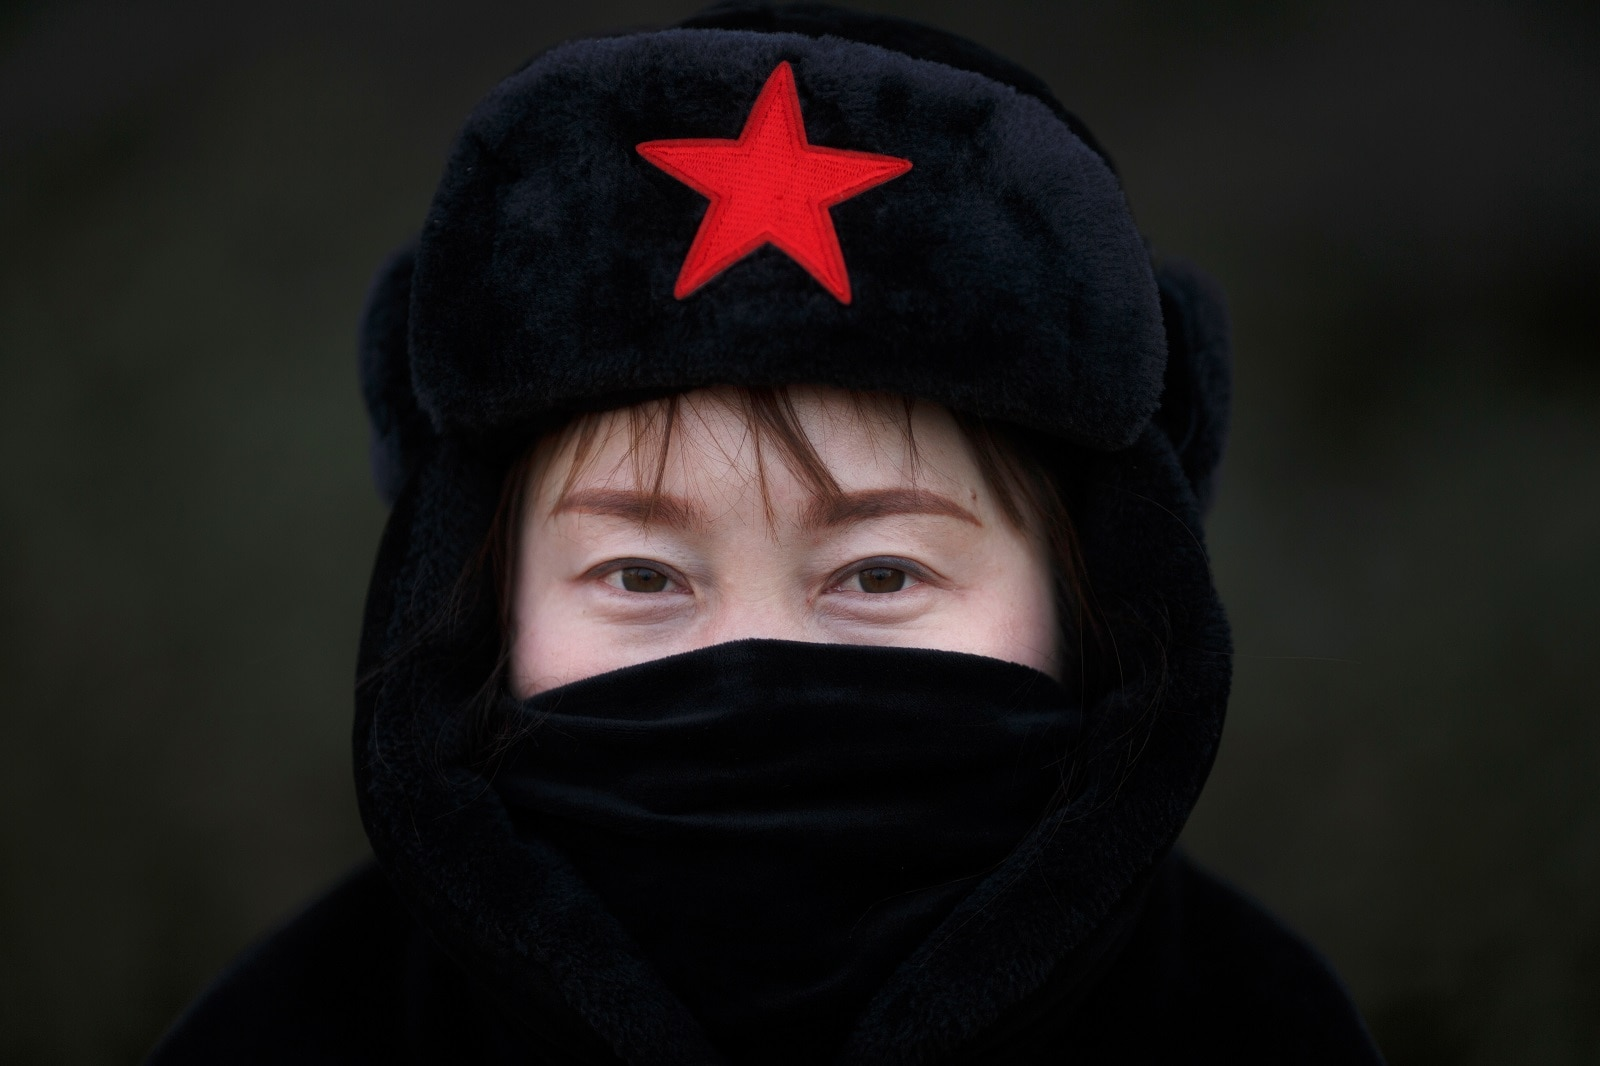 A driver of a tourist shuttle wears a hat with a red star as she poses for pictures at the Longmen Grottoes in Luoyang, Henan province, China January 21, 2019. REUTERS/Thomas Peter